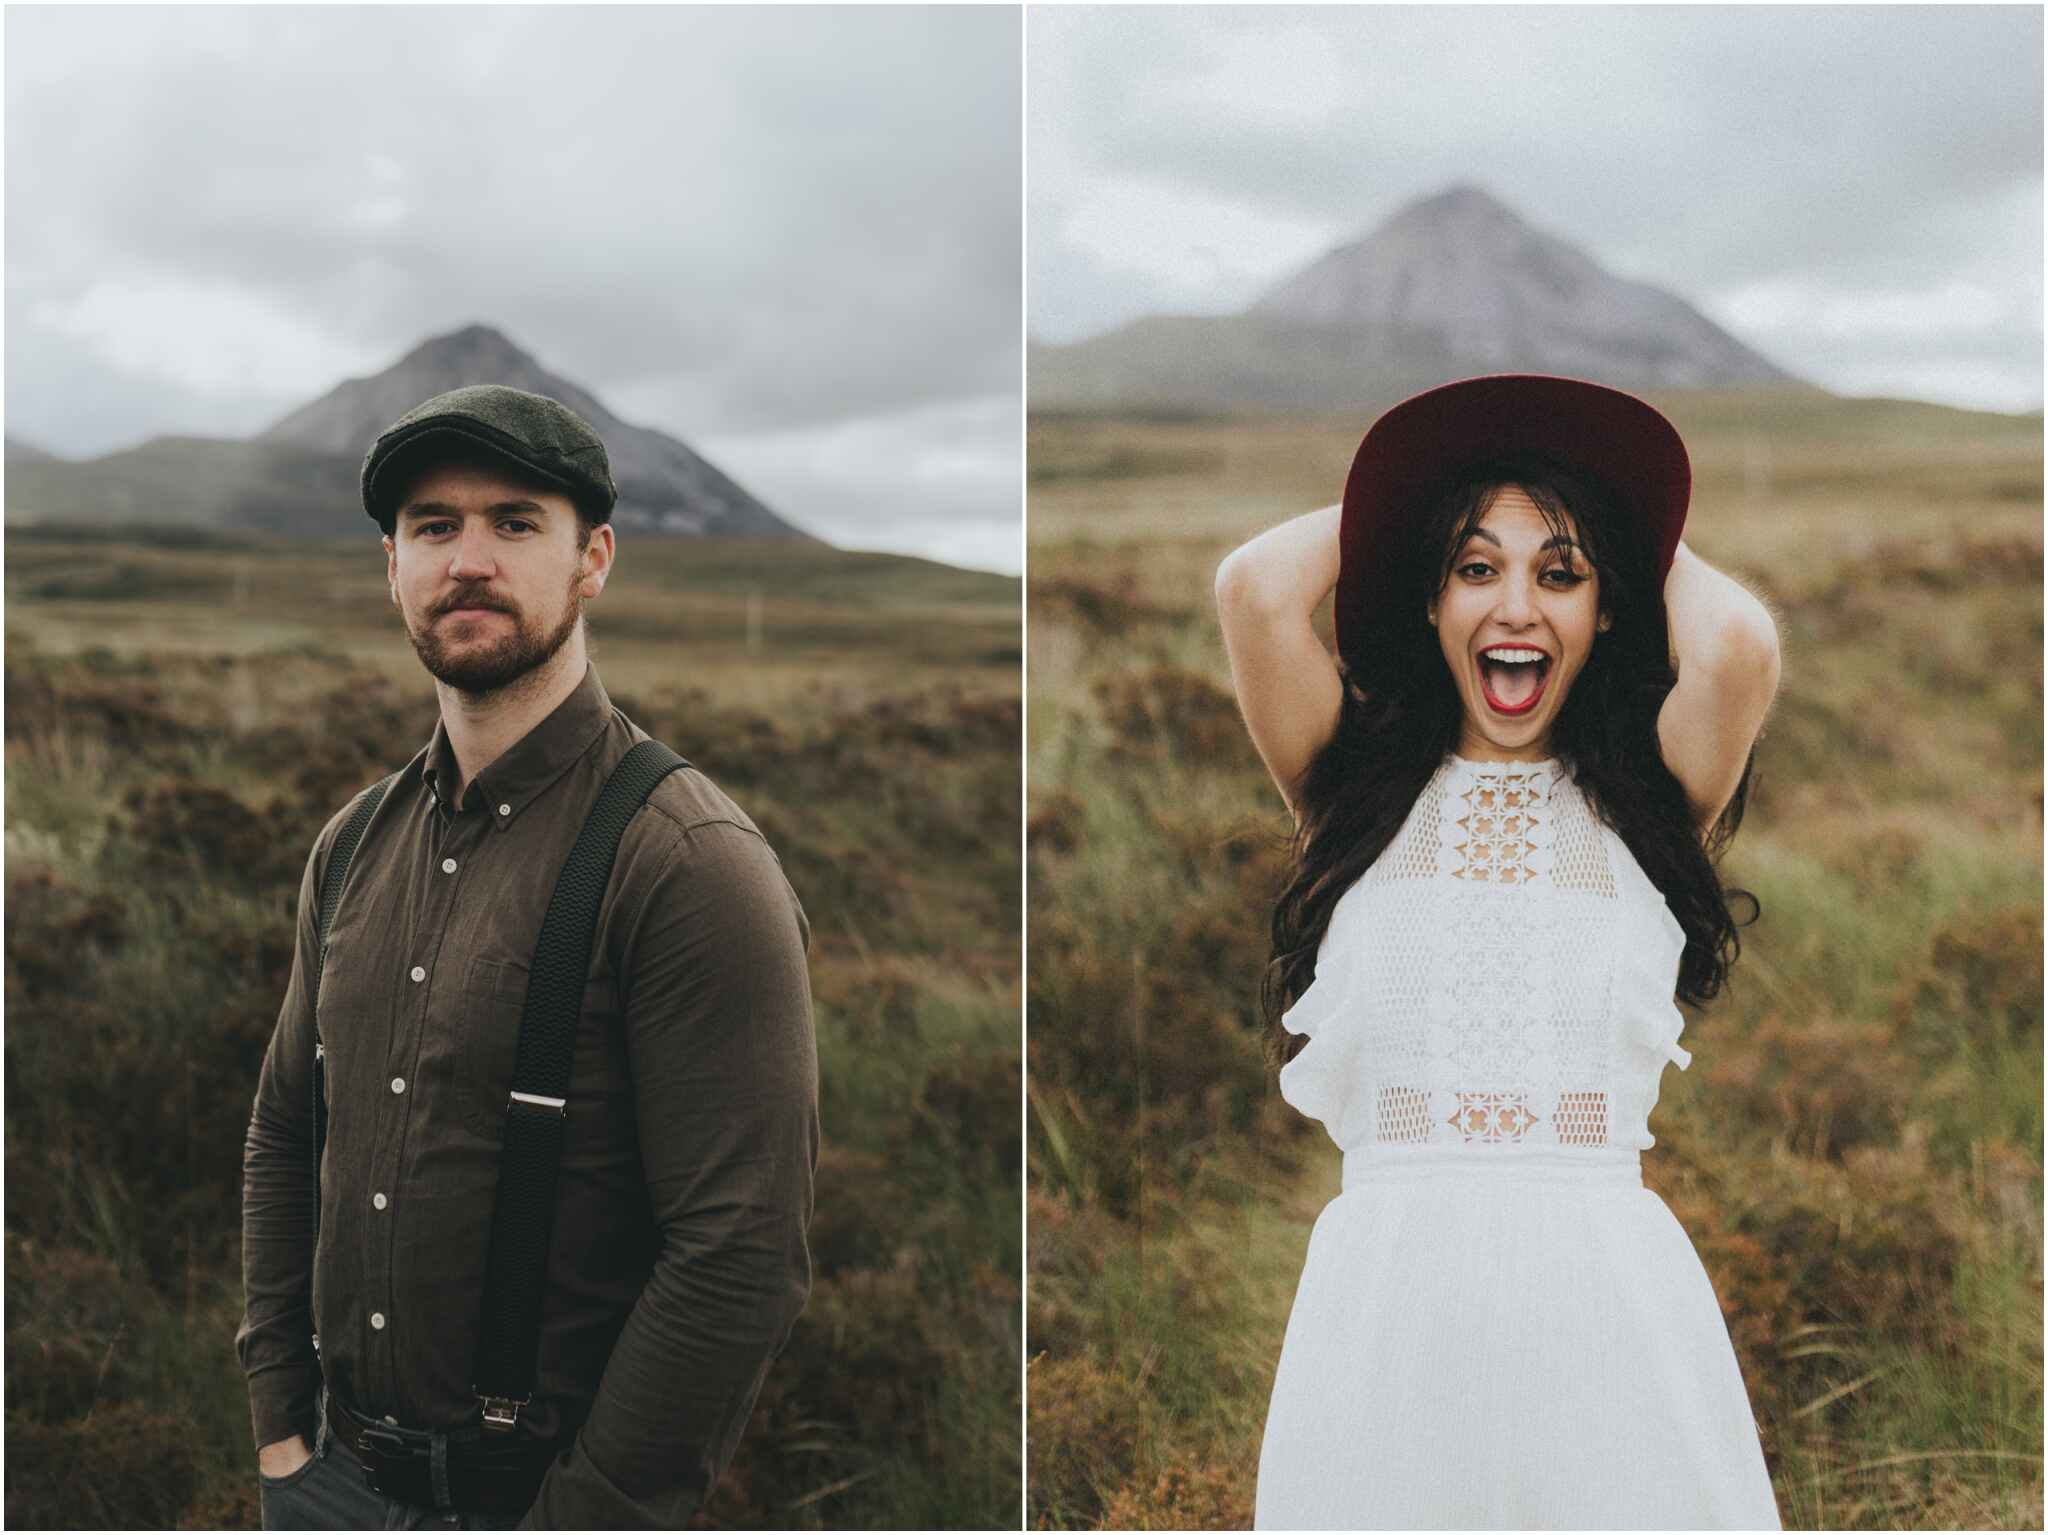 Rachel + David - Hiking Elopement in Muckish Mountain and Poisoned Glen, Donegal 20